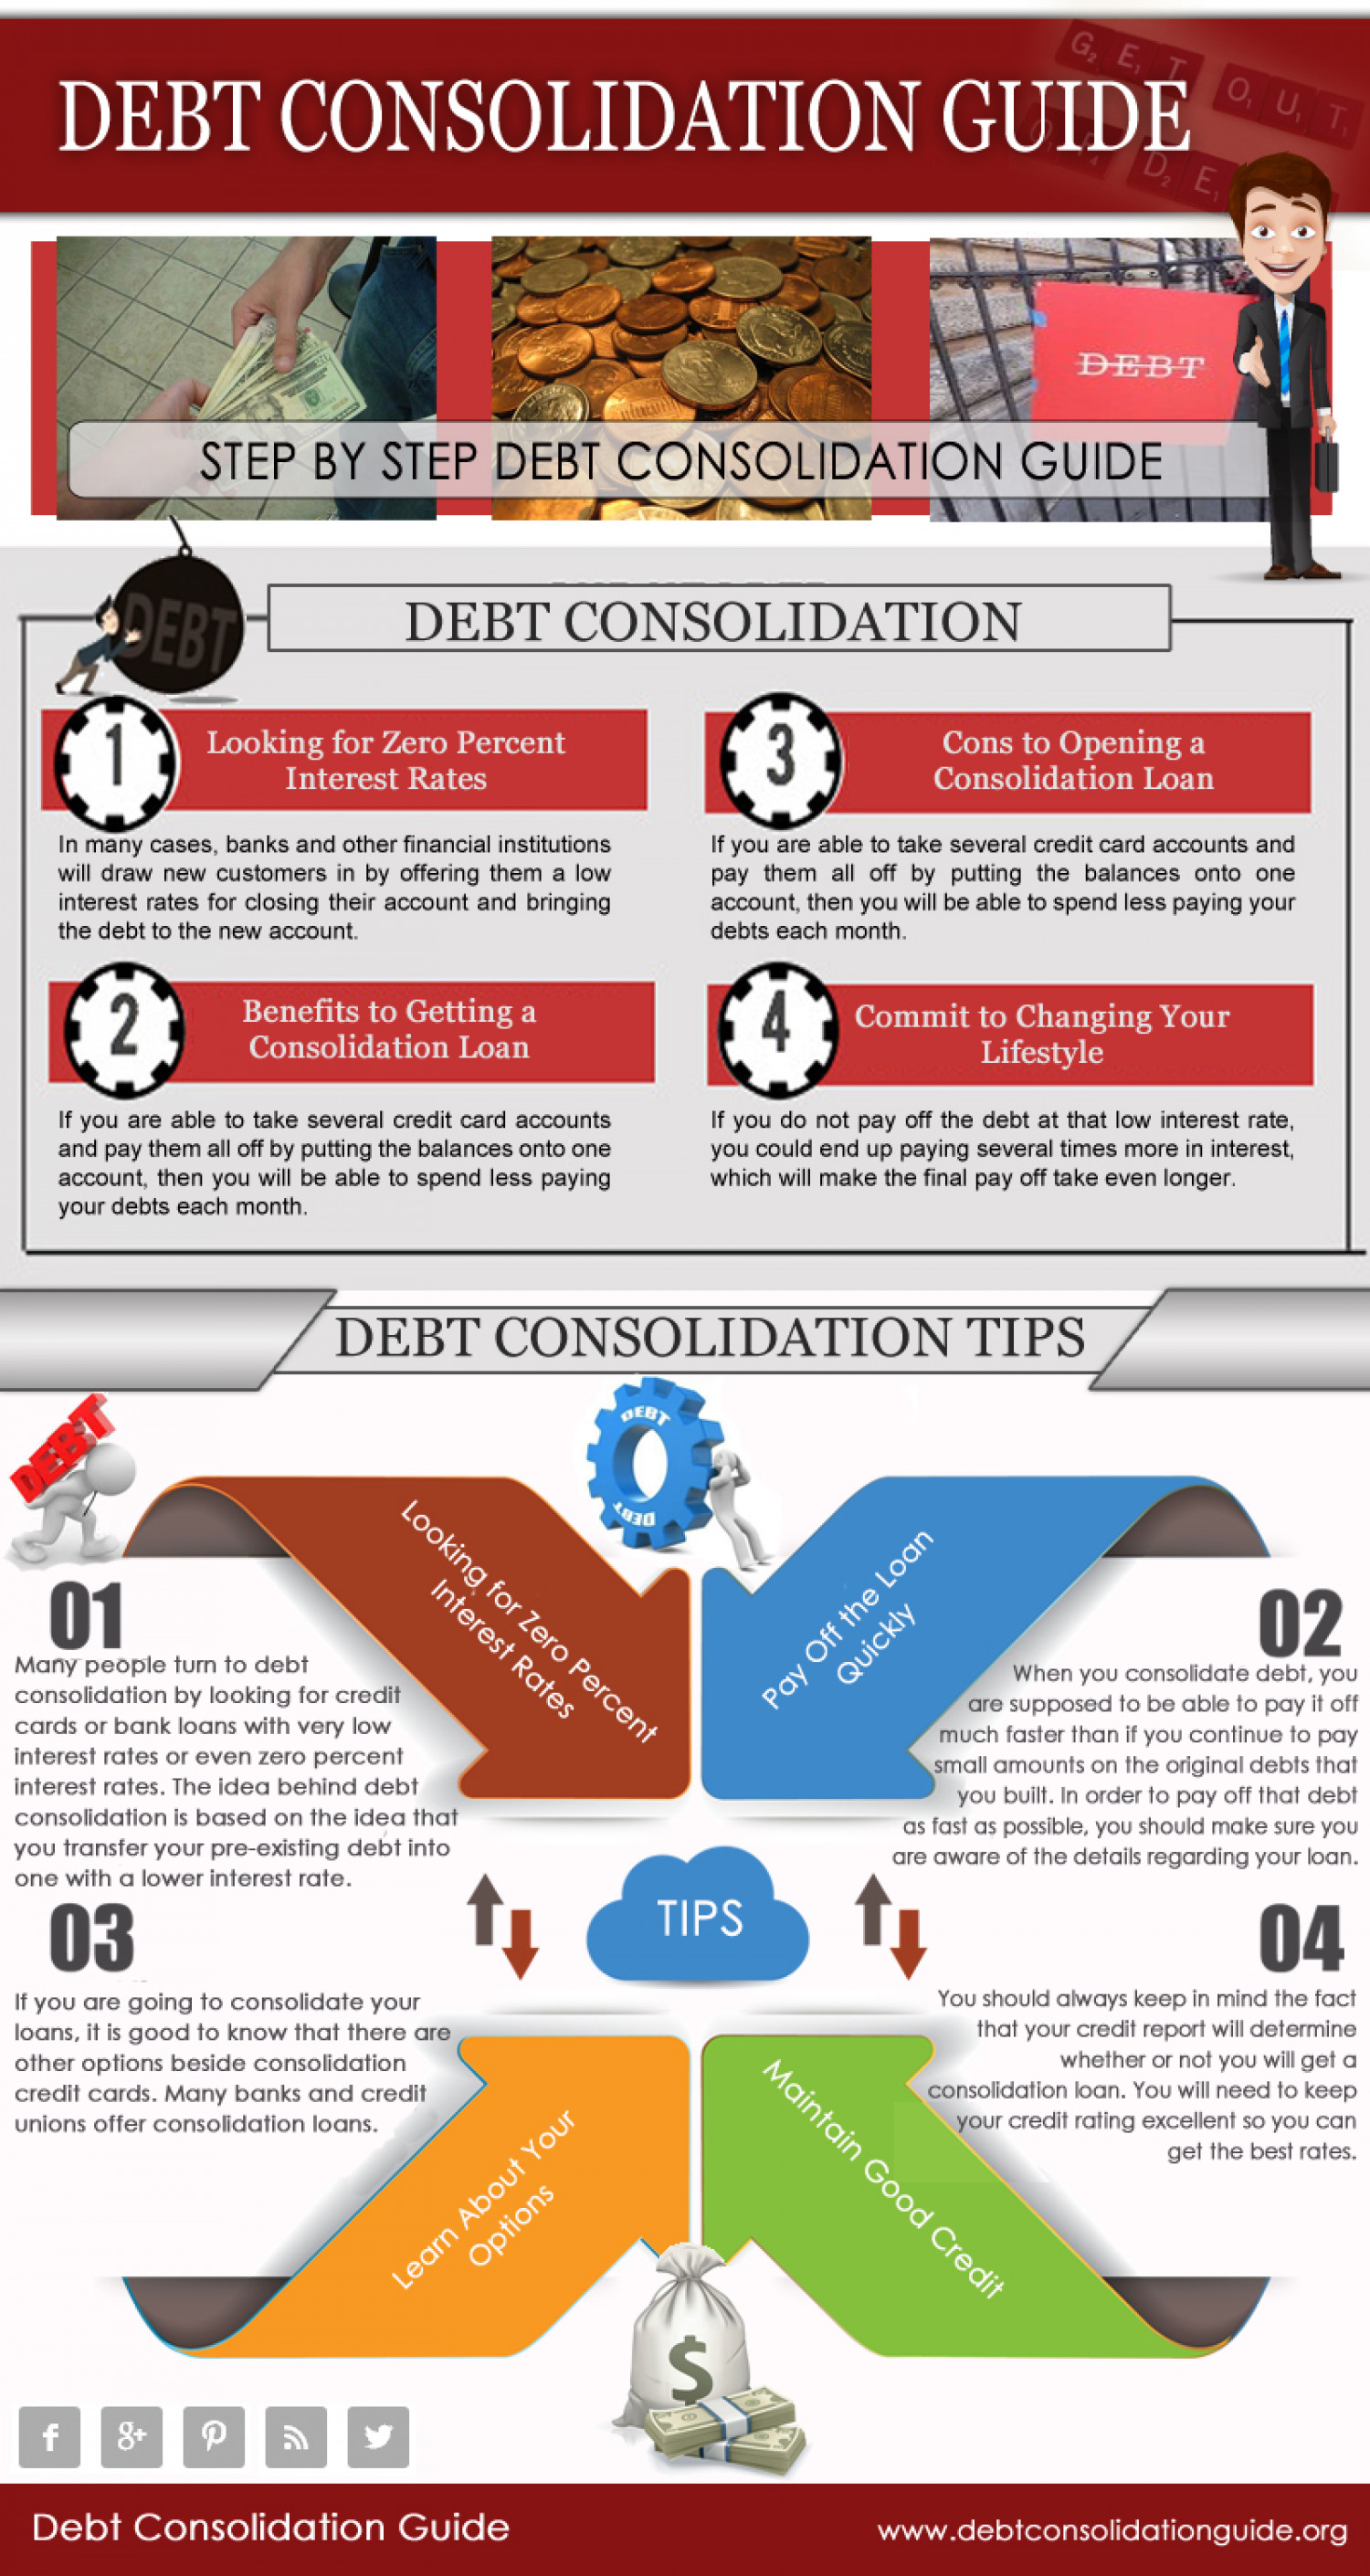 Debt Consolidation Guide Infographic